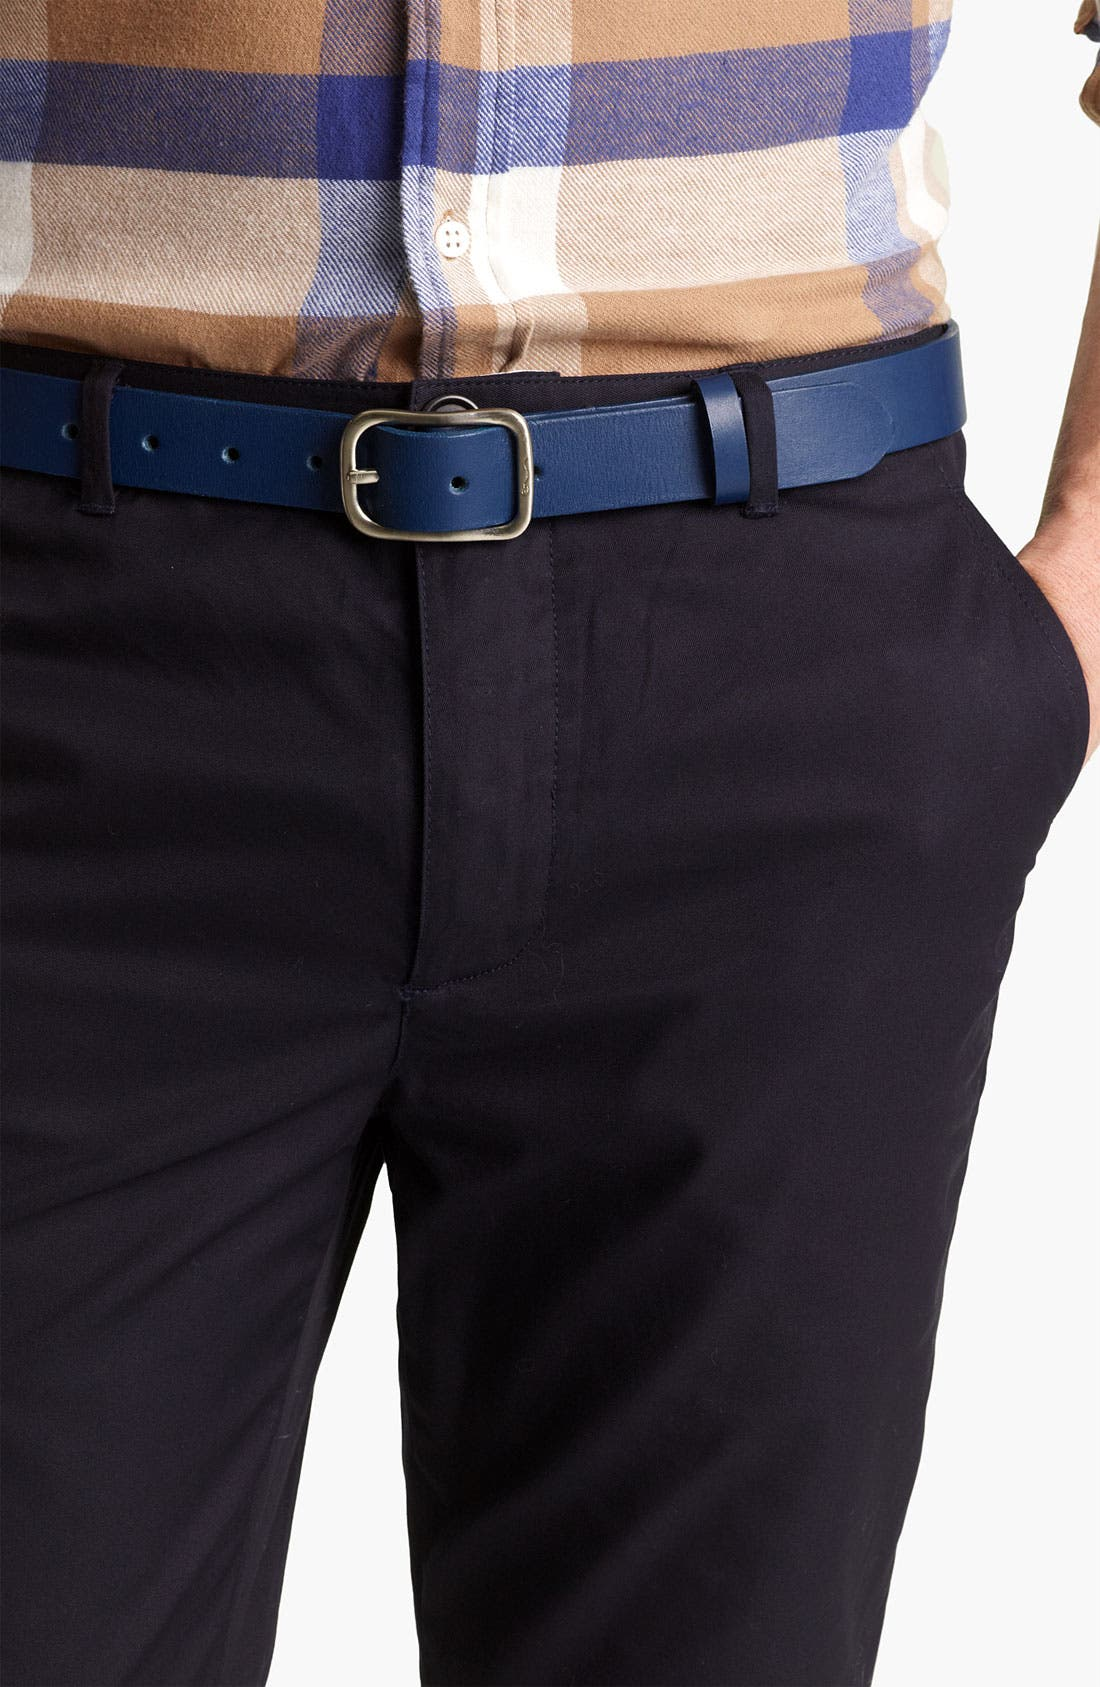 Alternate Image 1 Selected - Shipley & Halmos 'Cambridge' Leather Belt